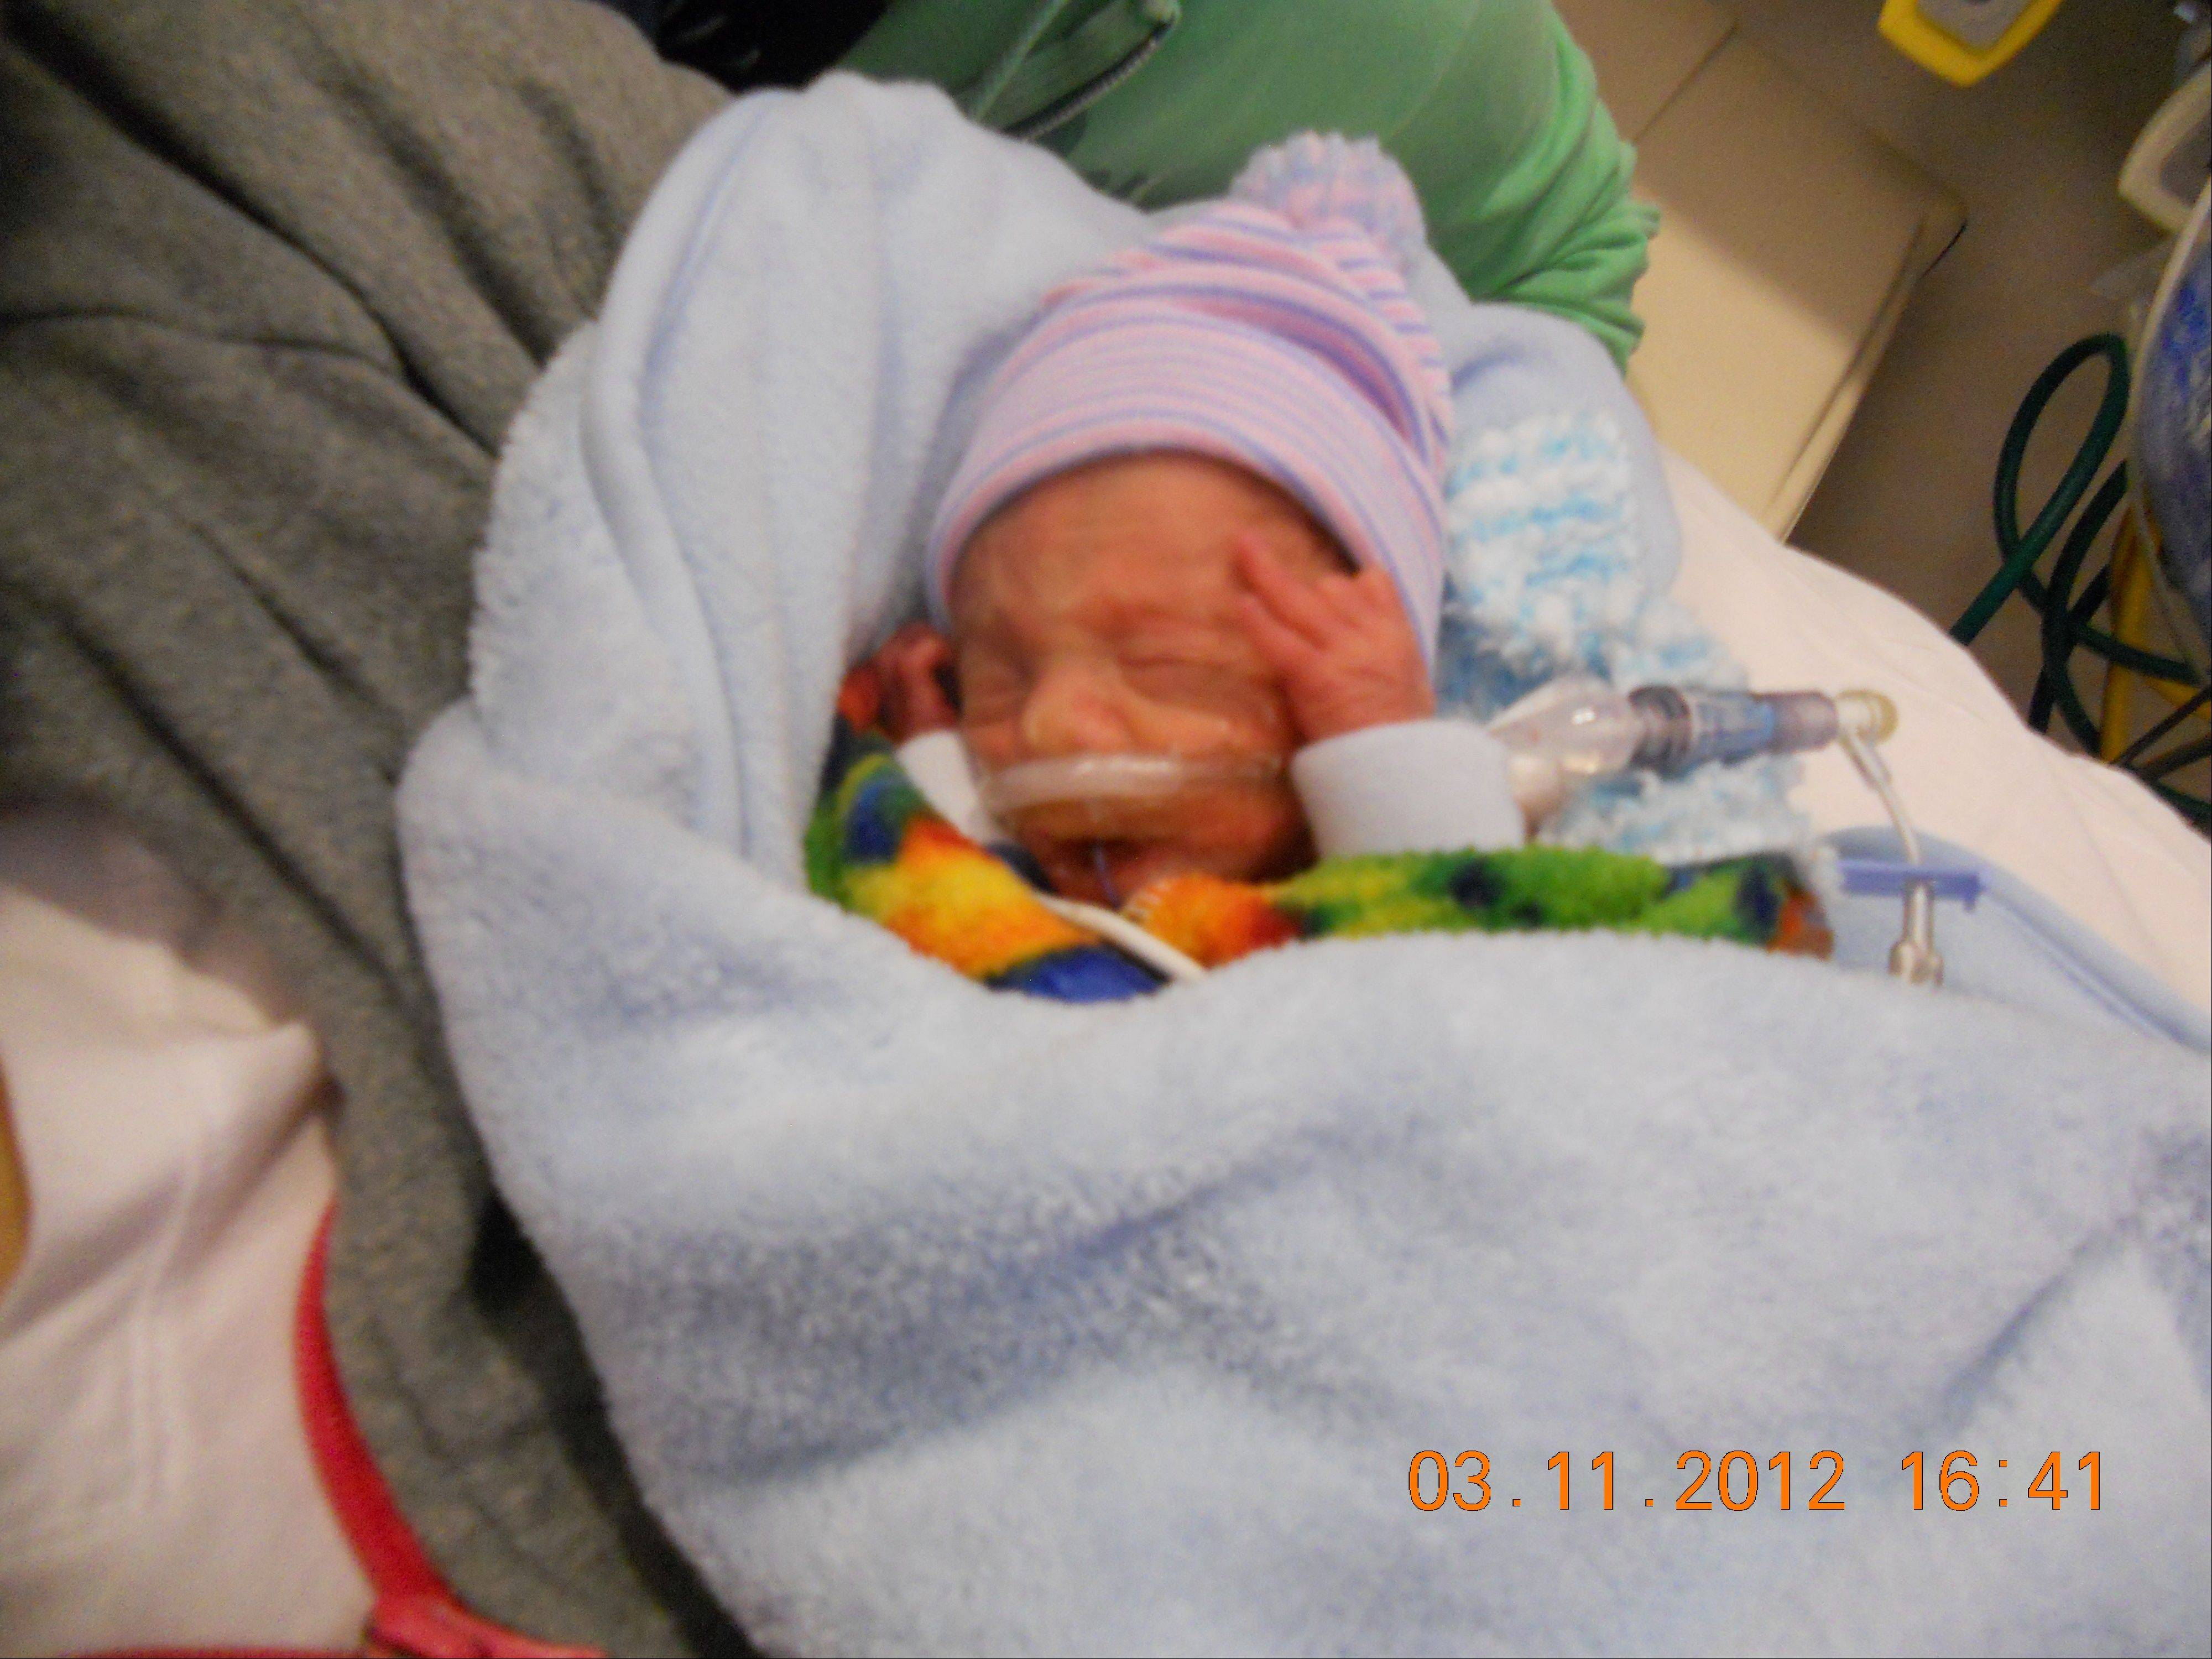 Henry Greske was just more than 2 pounds and 13 inches when he was born just shy of 27 weeks gestation.